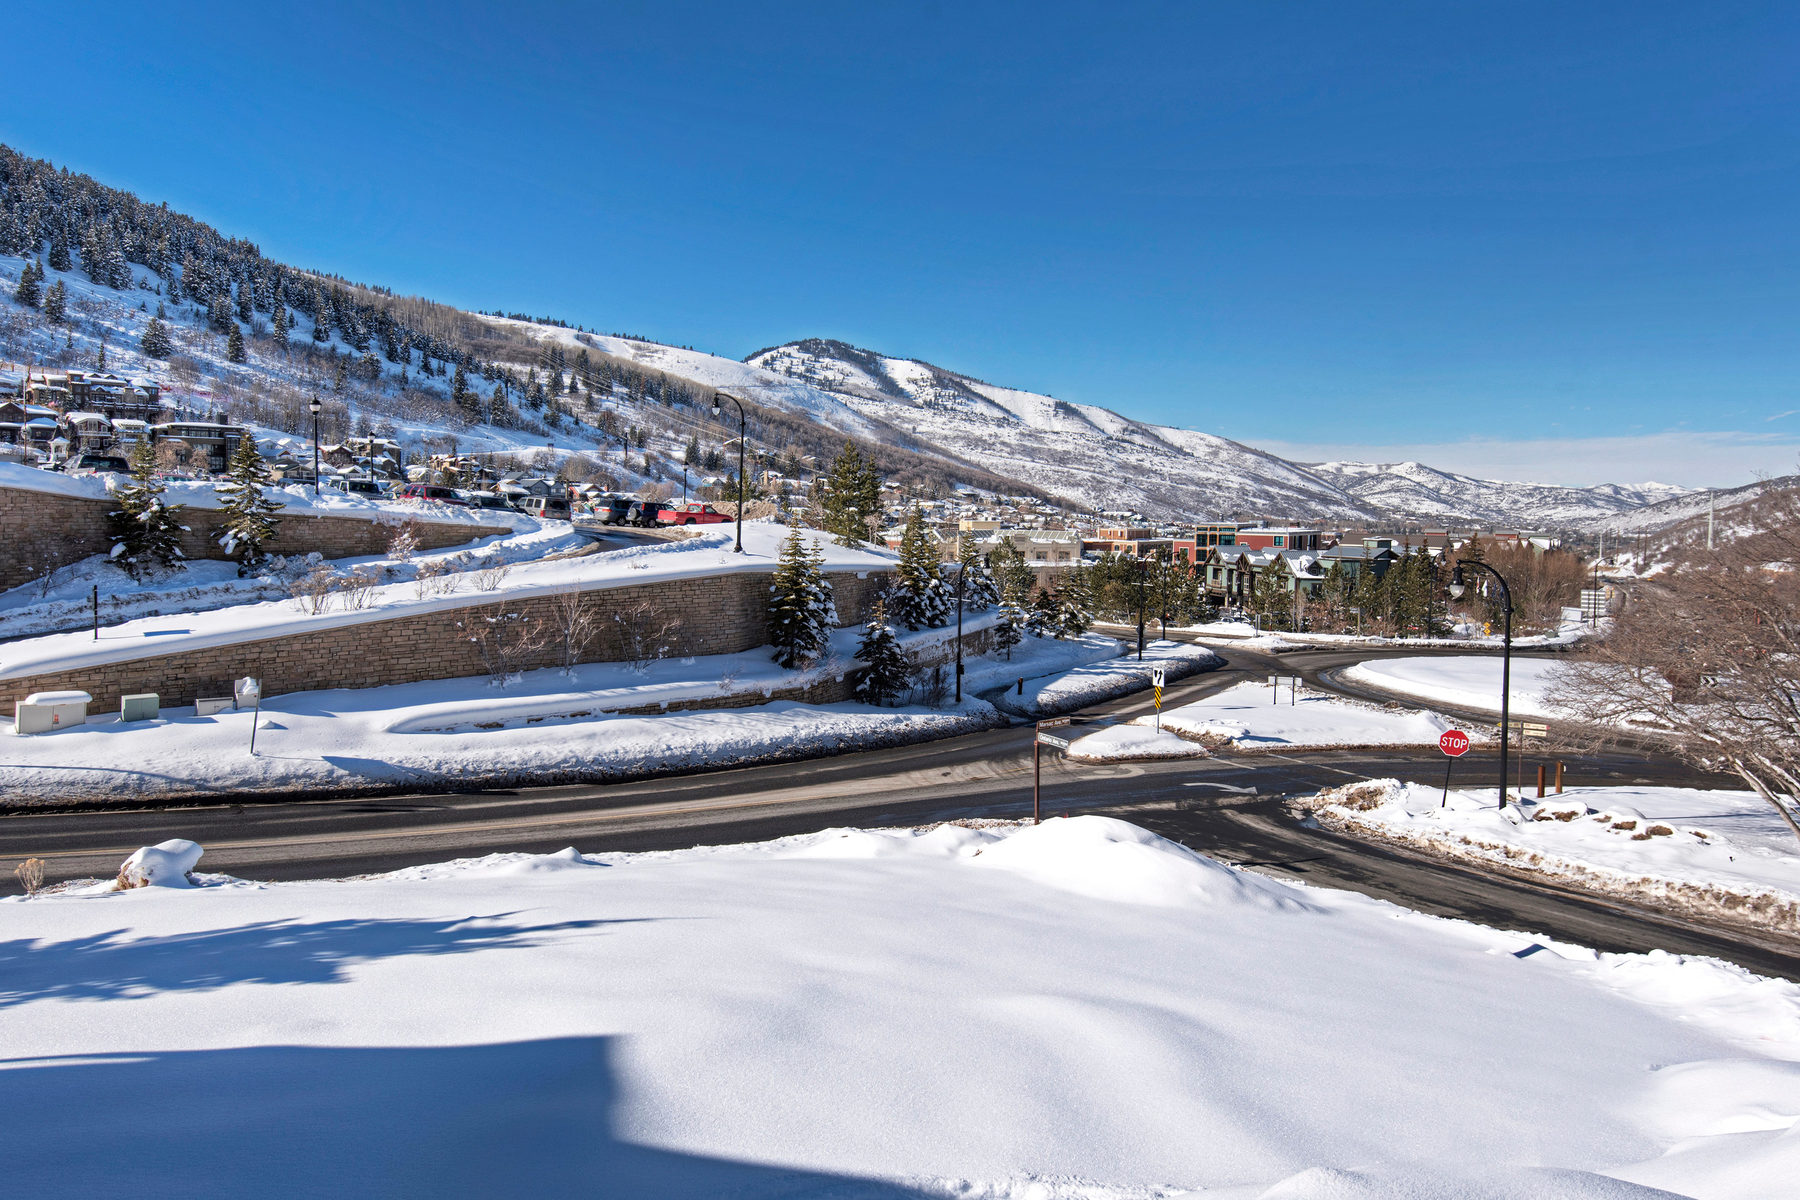 Additional photo for property listing at Rare Old Town Lot a Short Walking Distance to Historic Main Street 524 Marsac Ave  Lot 1 Park City, Utah 84060 United States